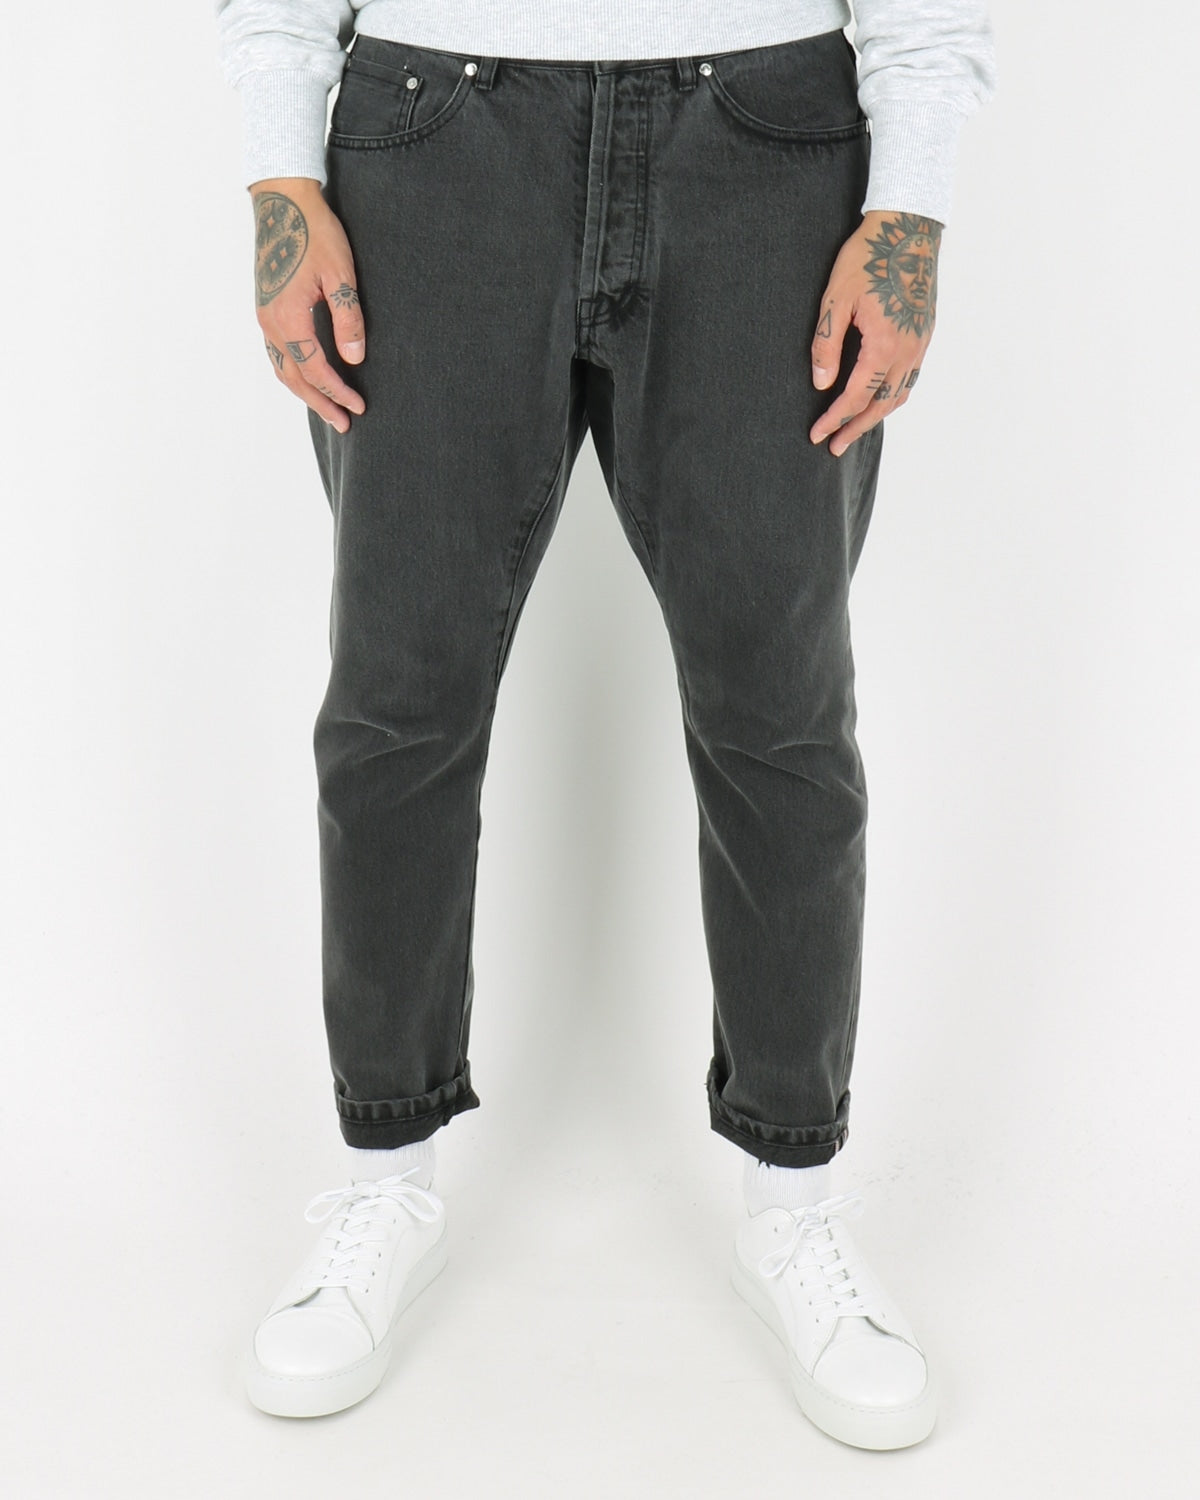 han kjobenhavn_drop crotch jeans_black stonewash_view_1_4